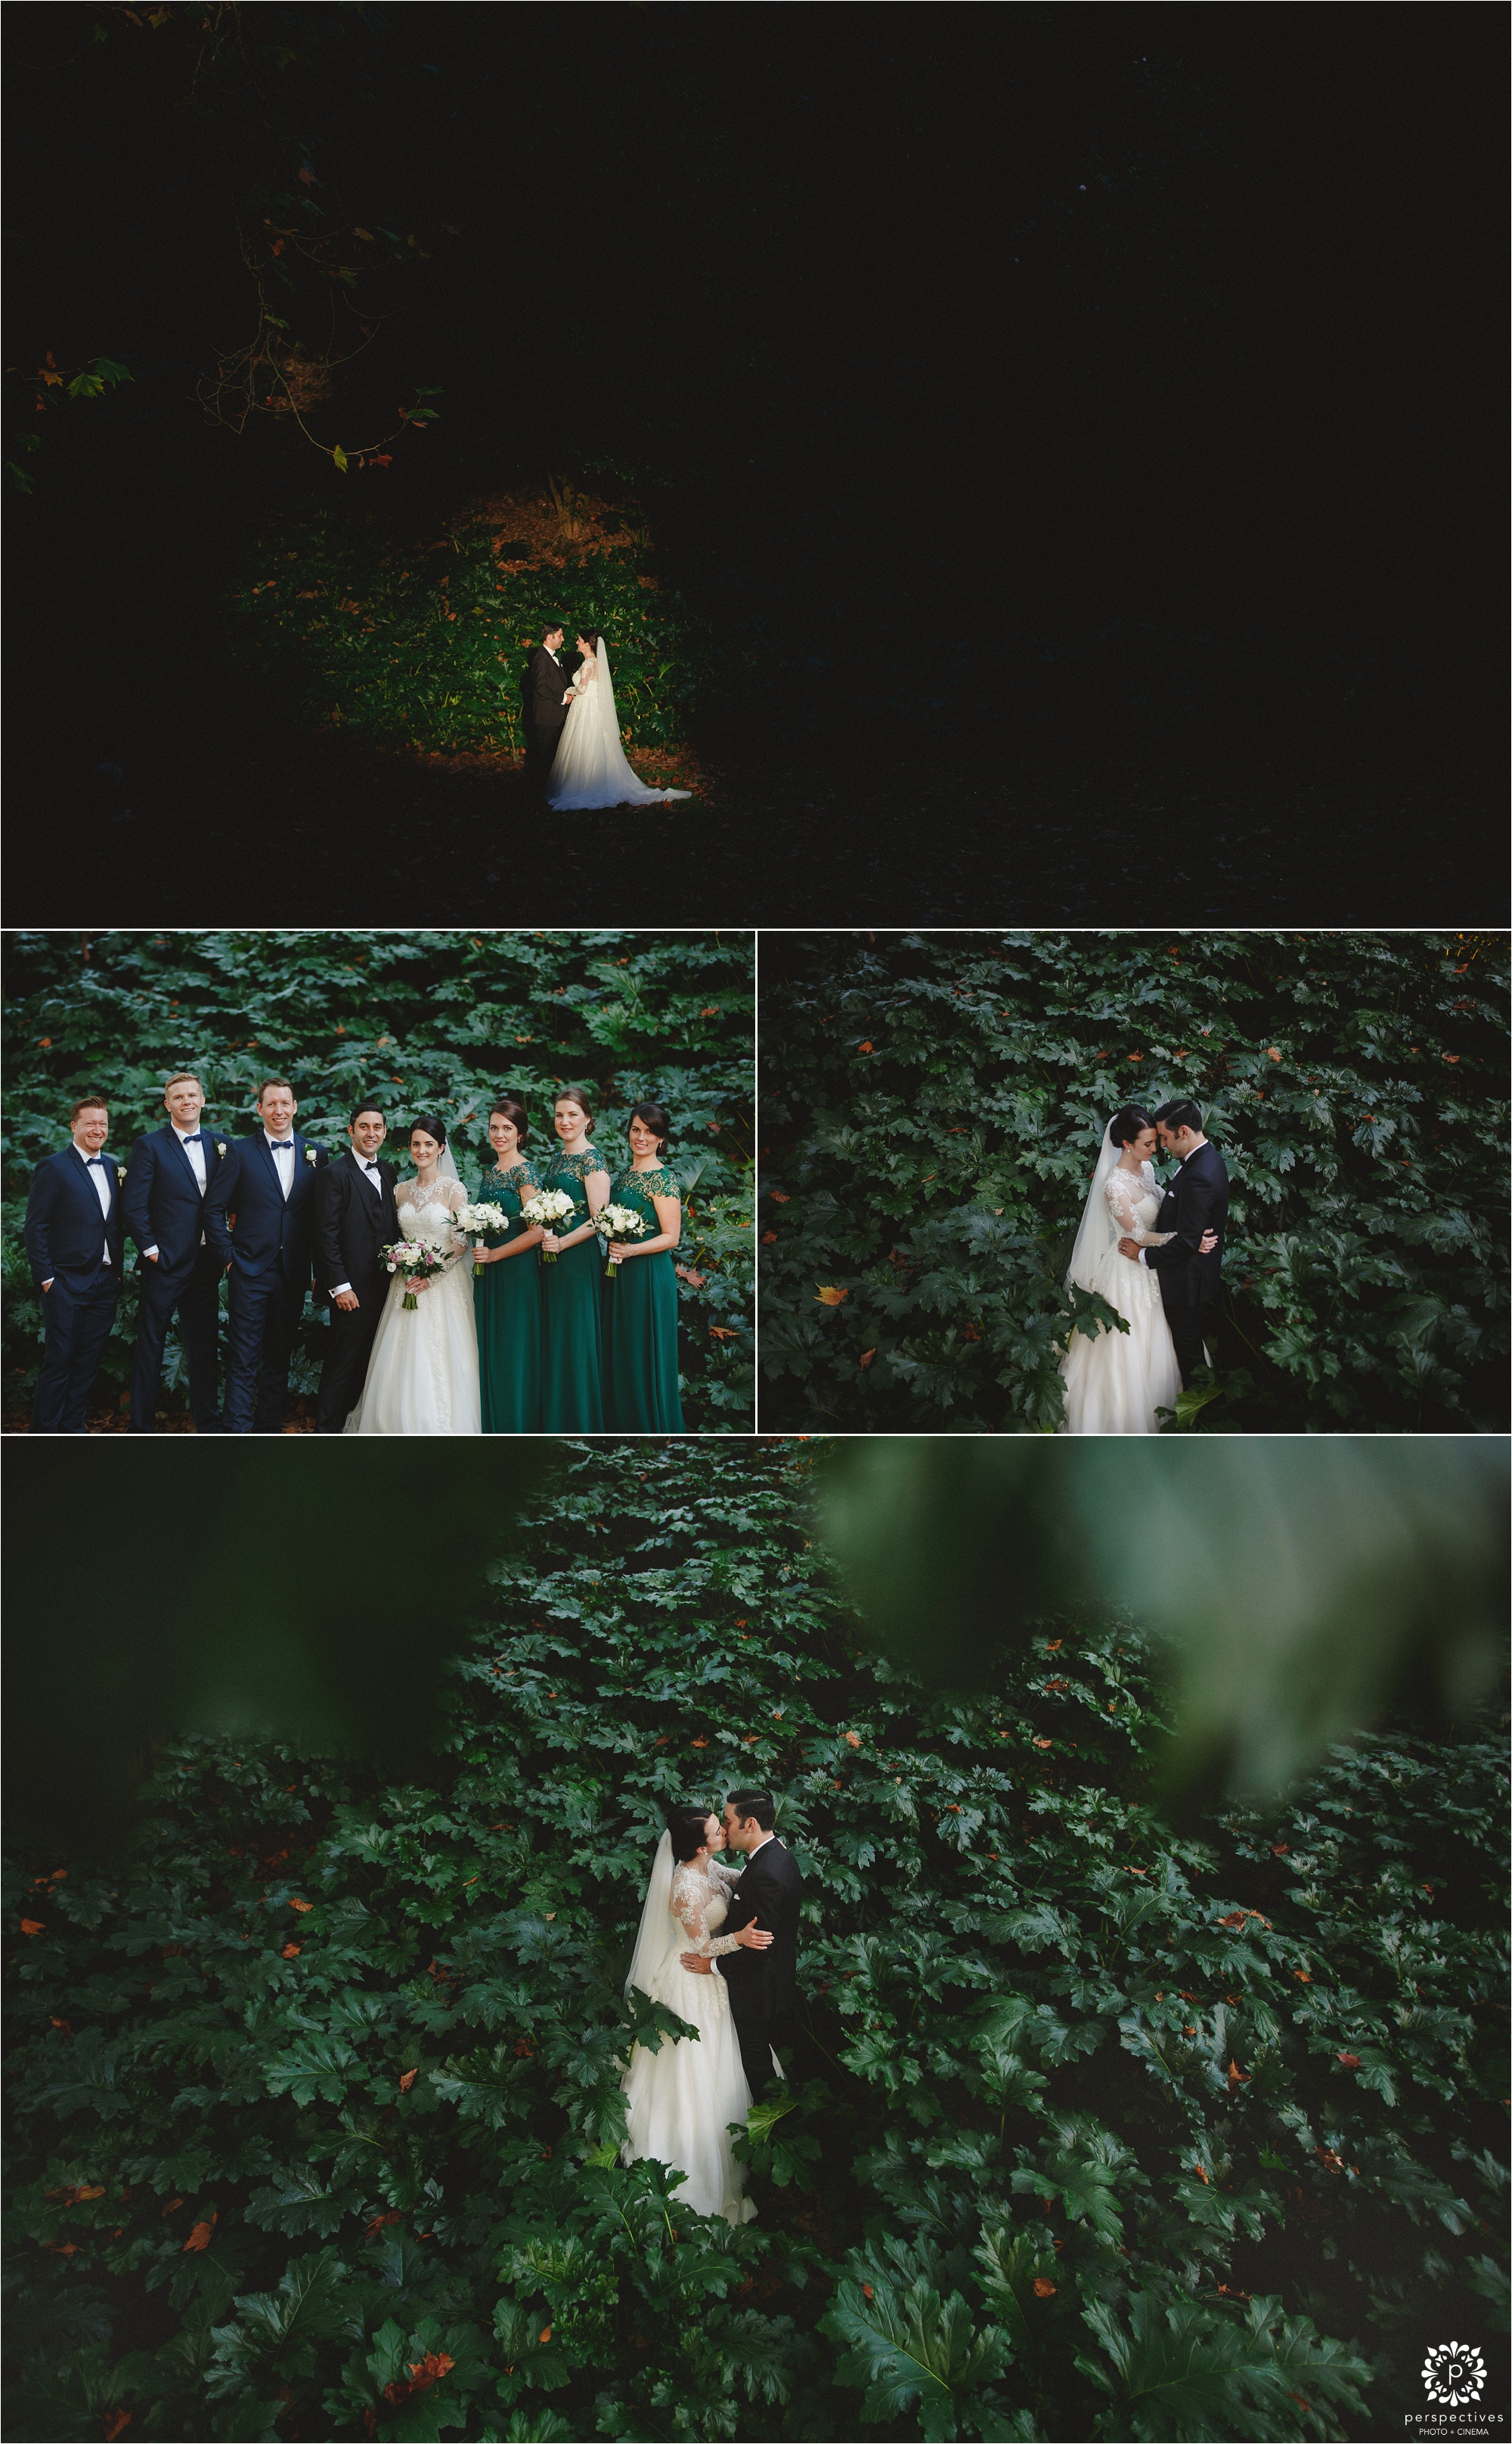 Hamilton wedding photographers NZ